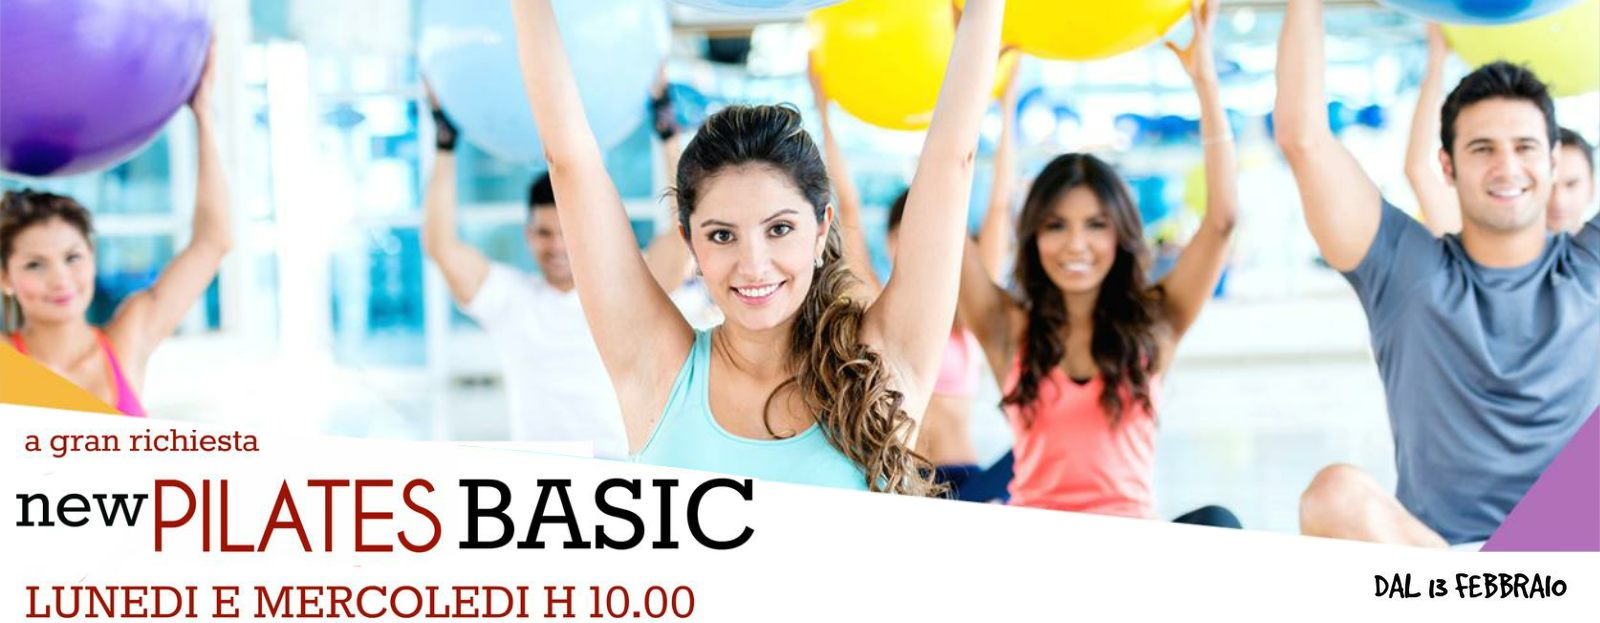 pilates_basic_resize